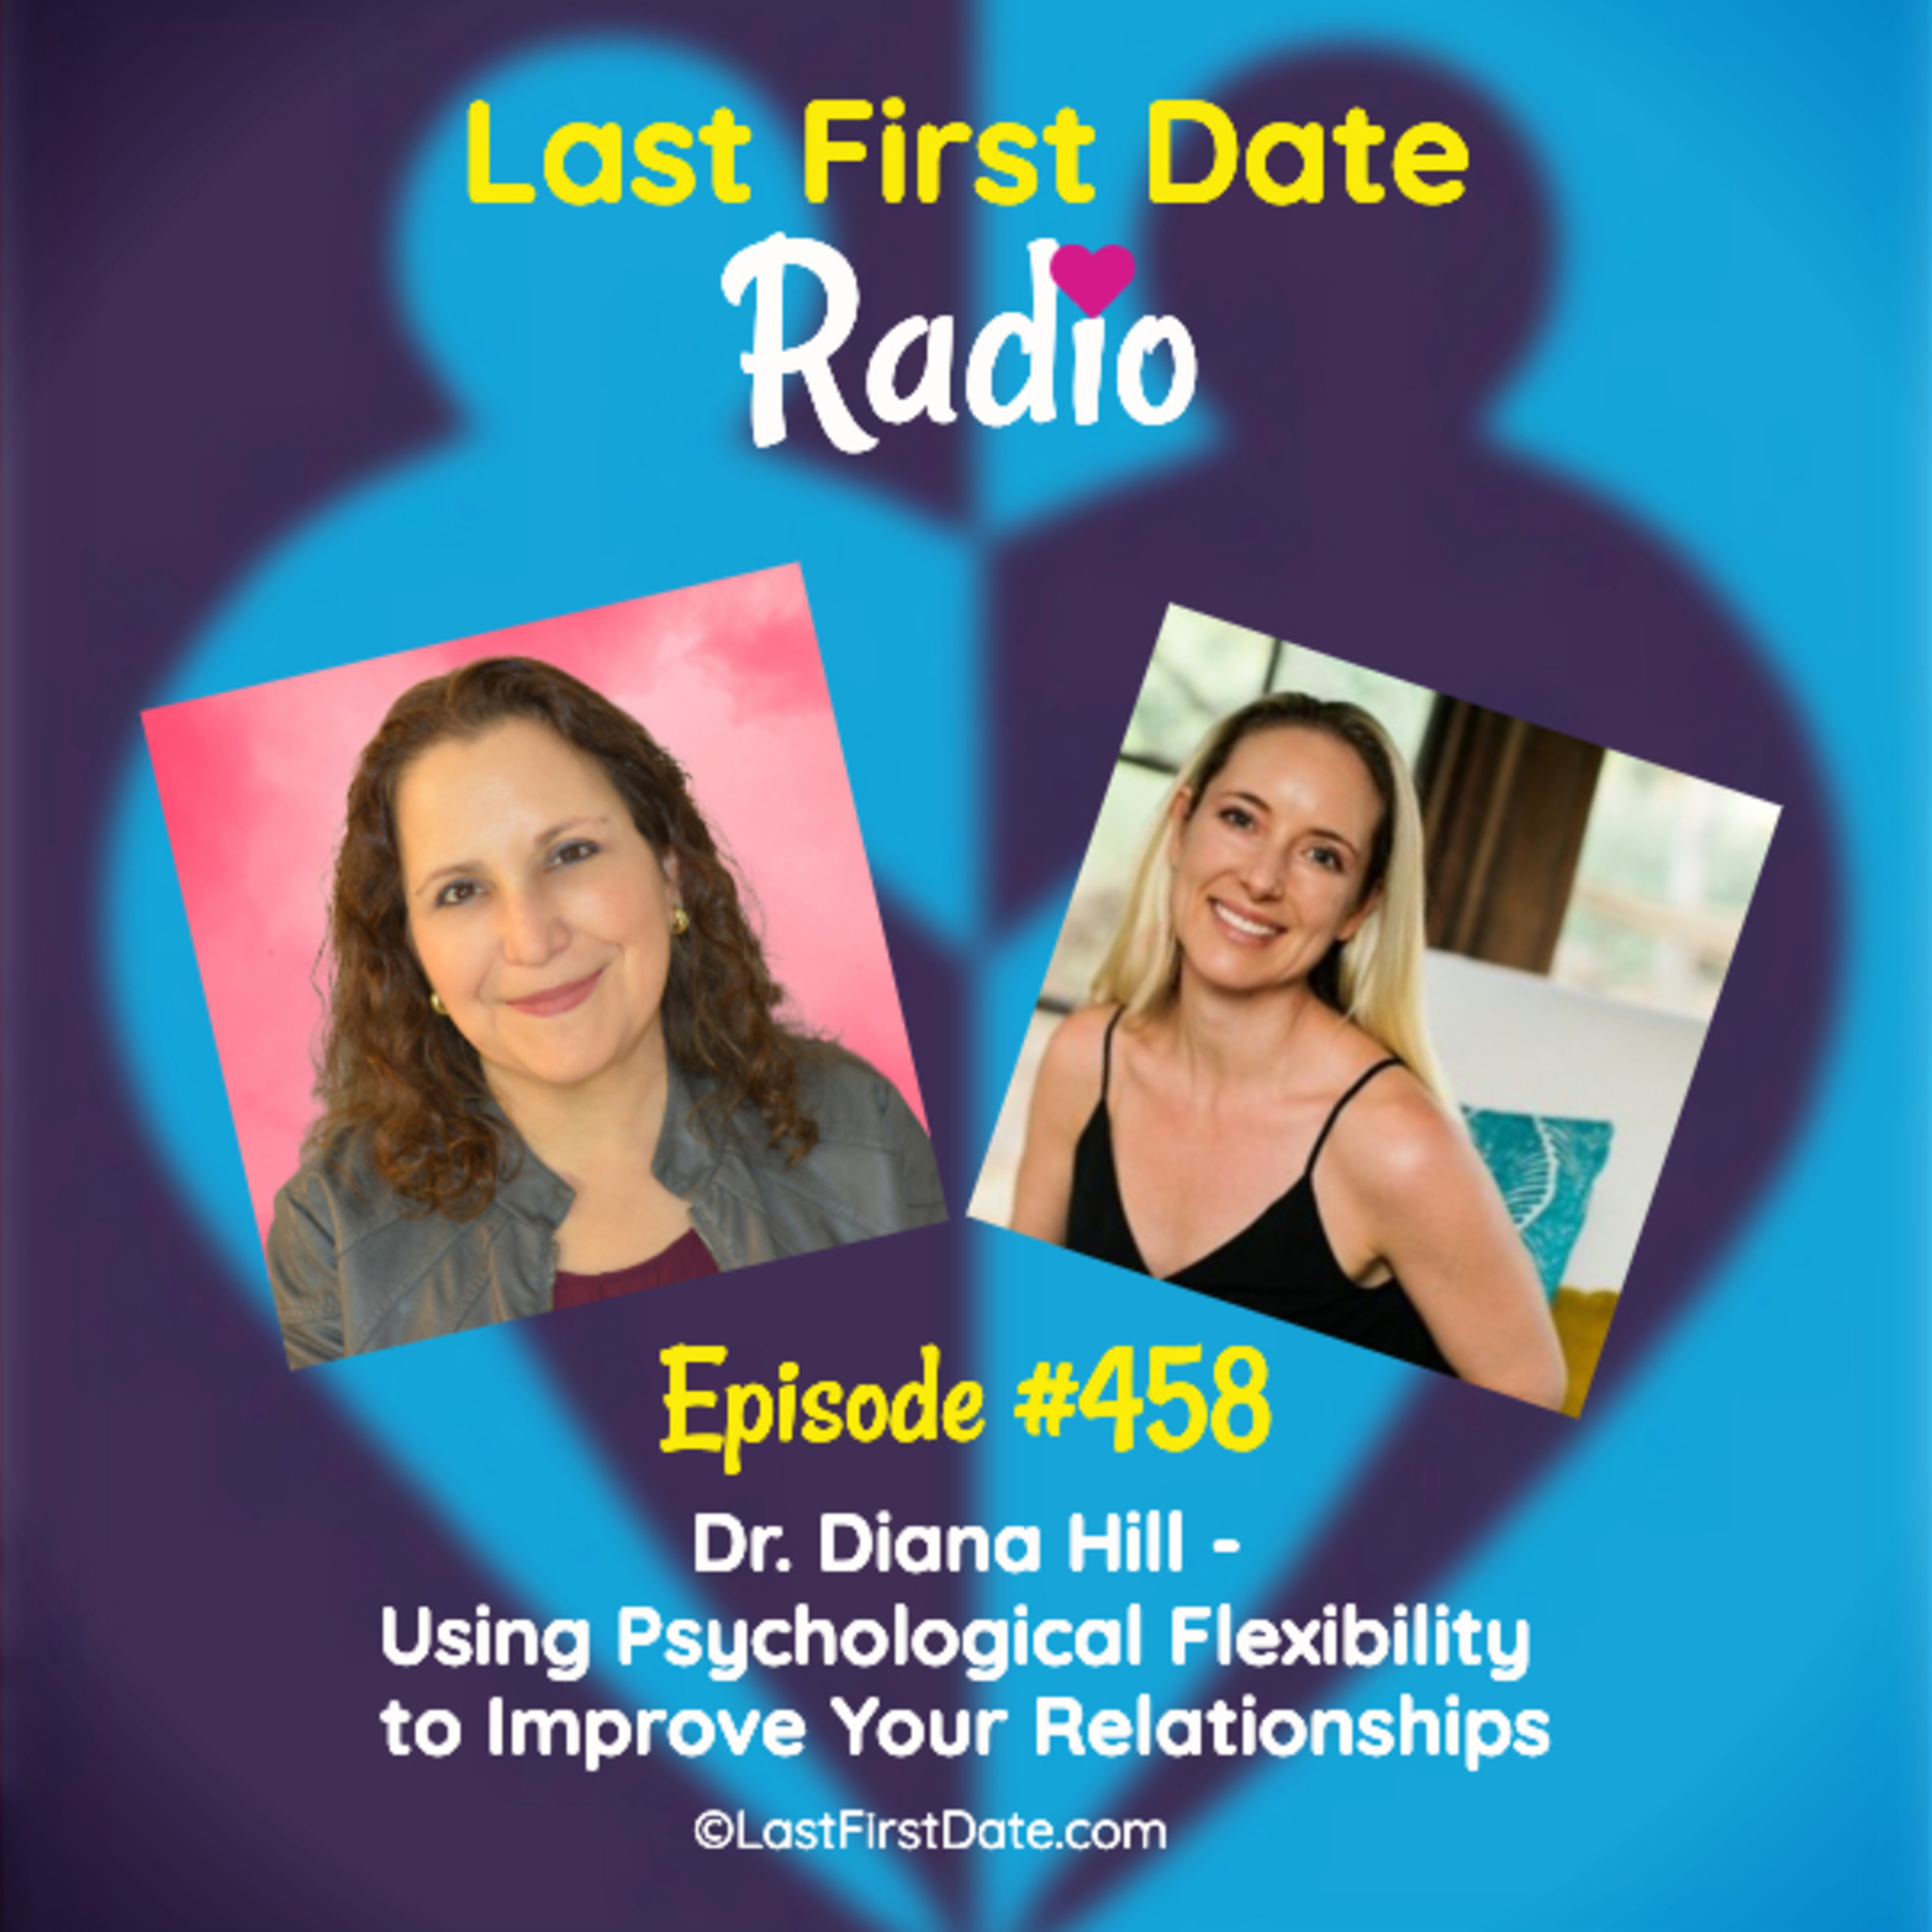 Last First Date Radio - EP 458: Dr. Diana Hill - Using Psychological Flexibility to Improve Your Relationships